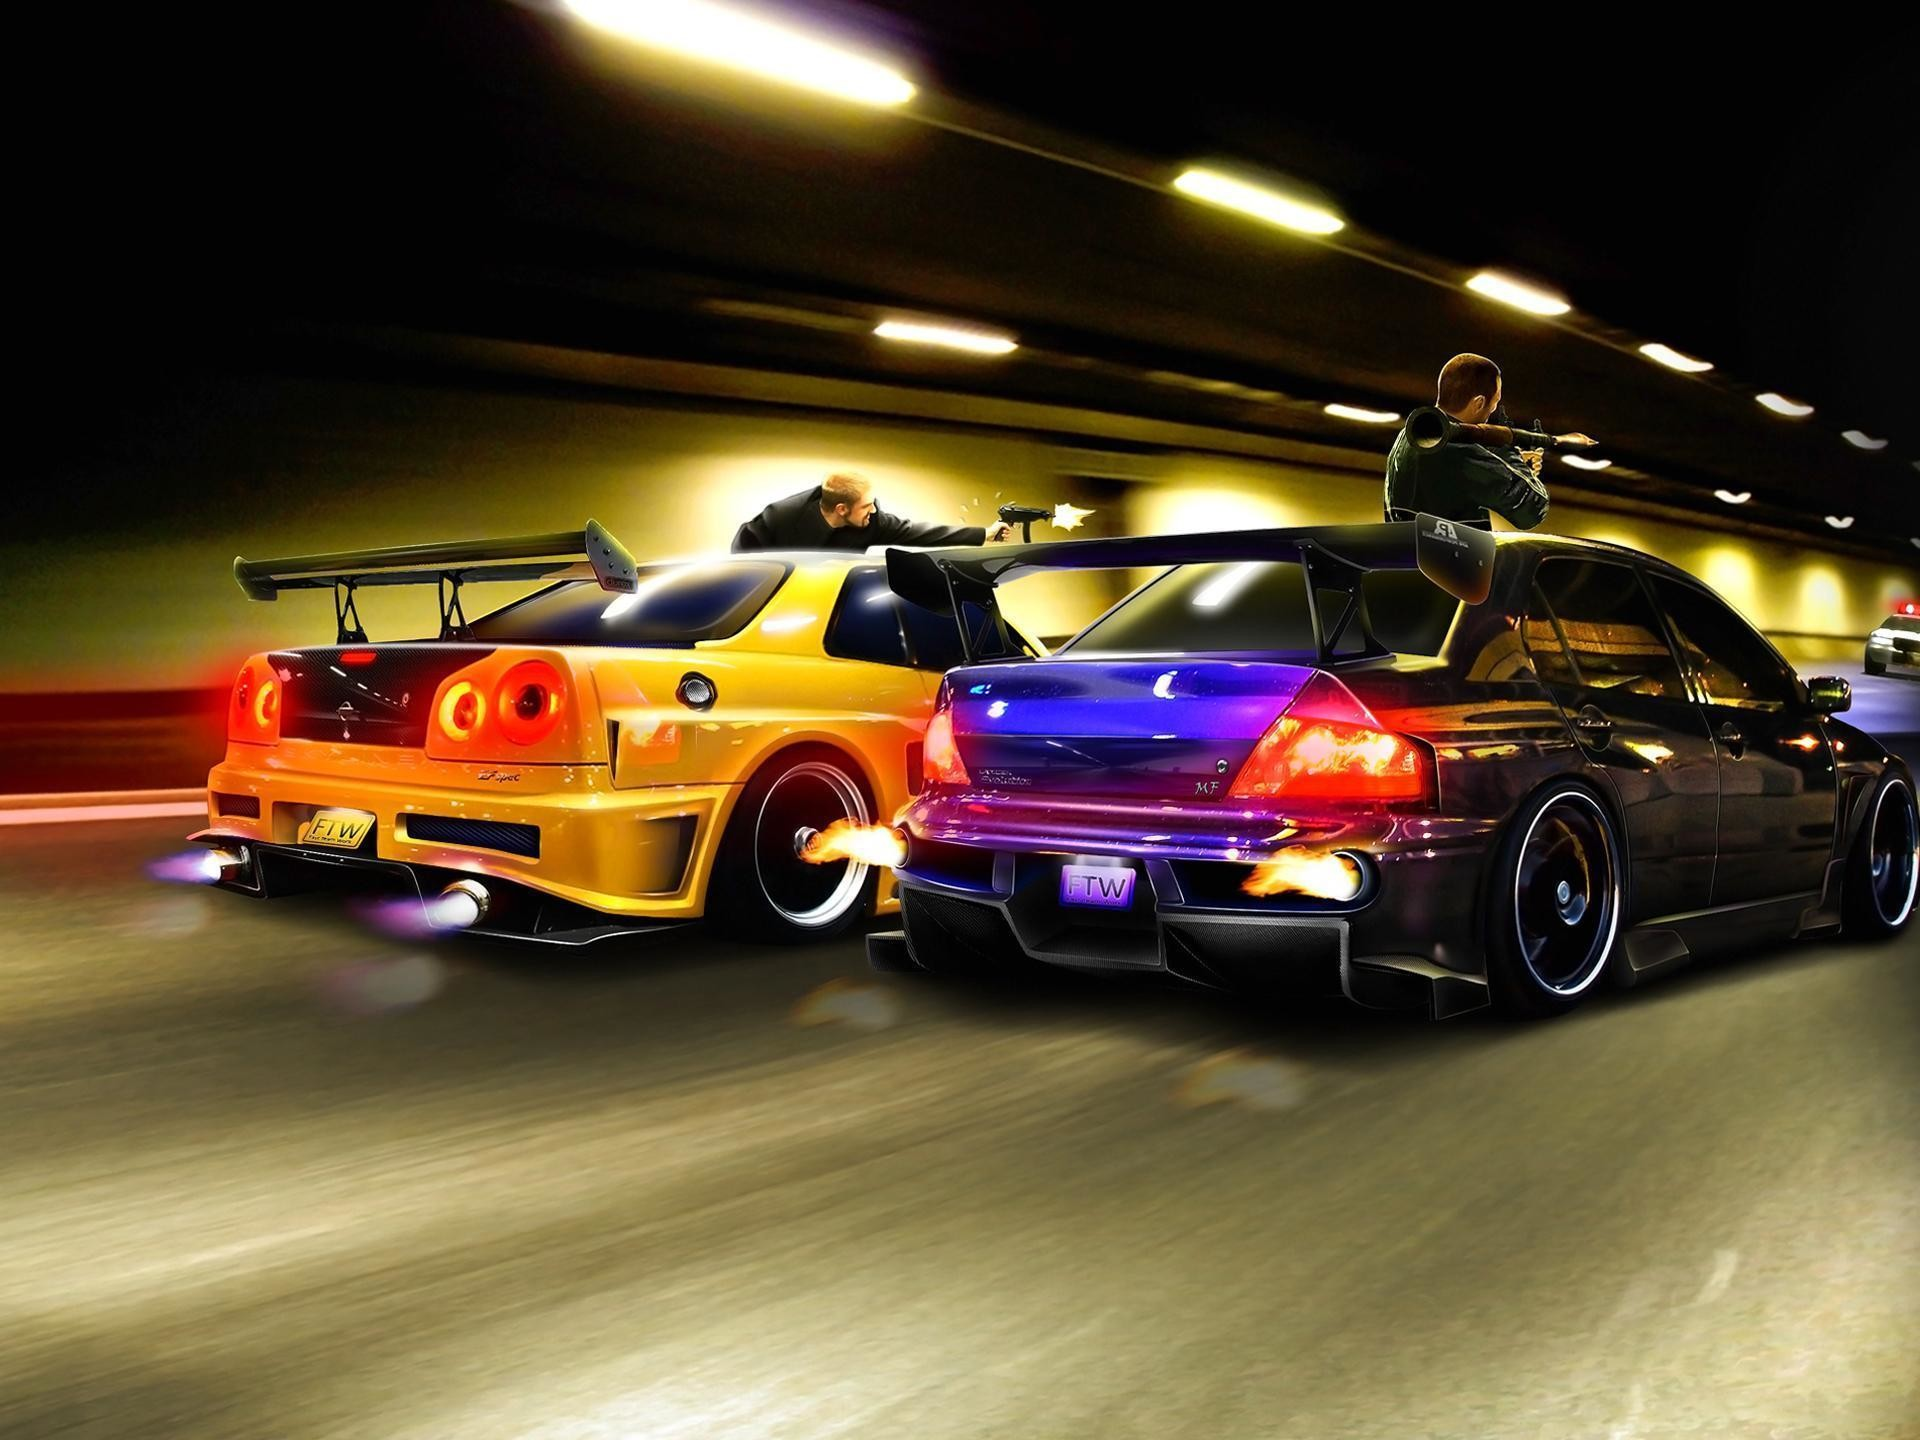 1920x1440 Street Racing Cars Wallpaper For Desktop